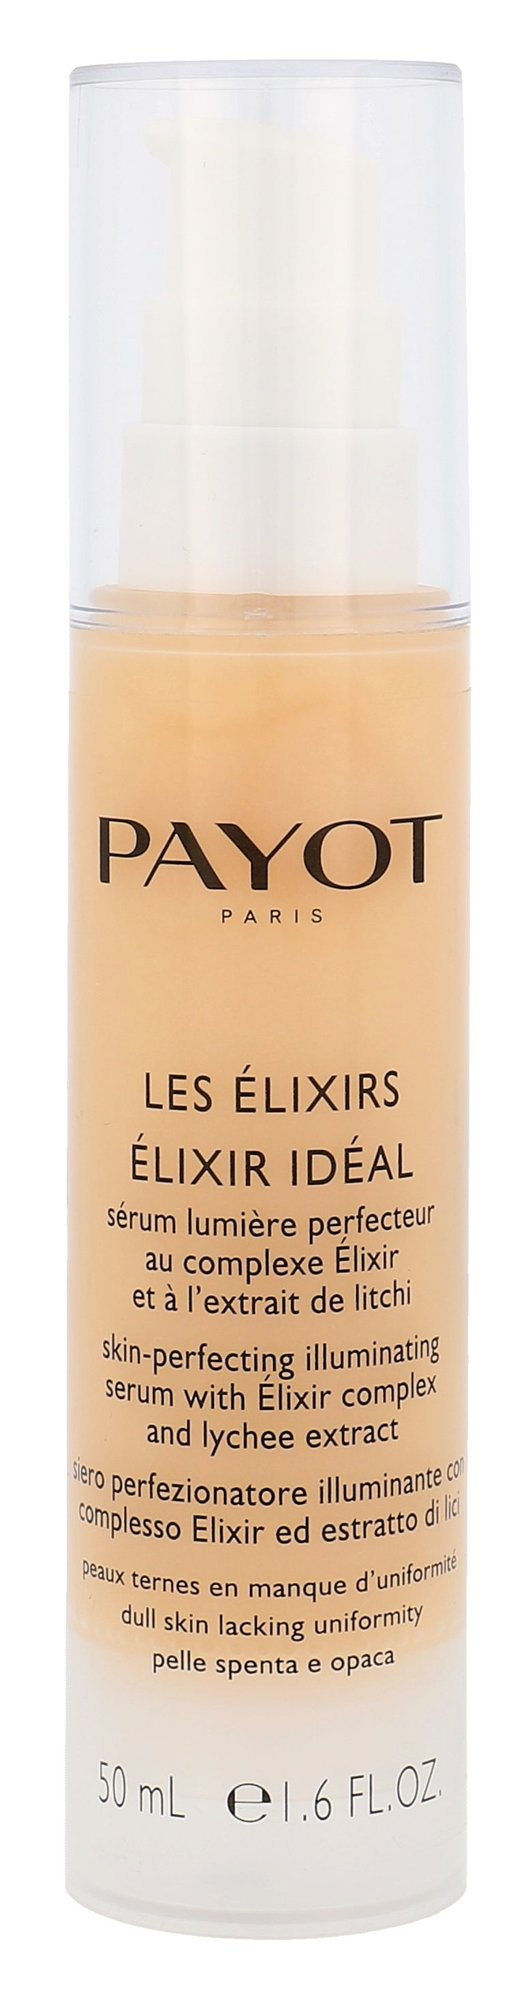 PAYOT Les Elixirs Cosmetic 50ml  Elixir Ideal